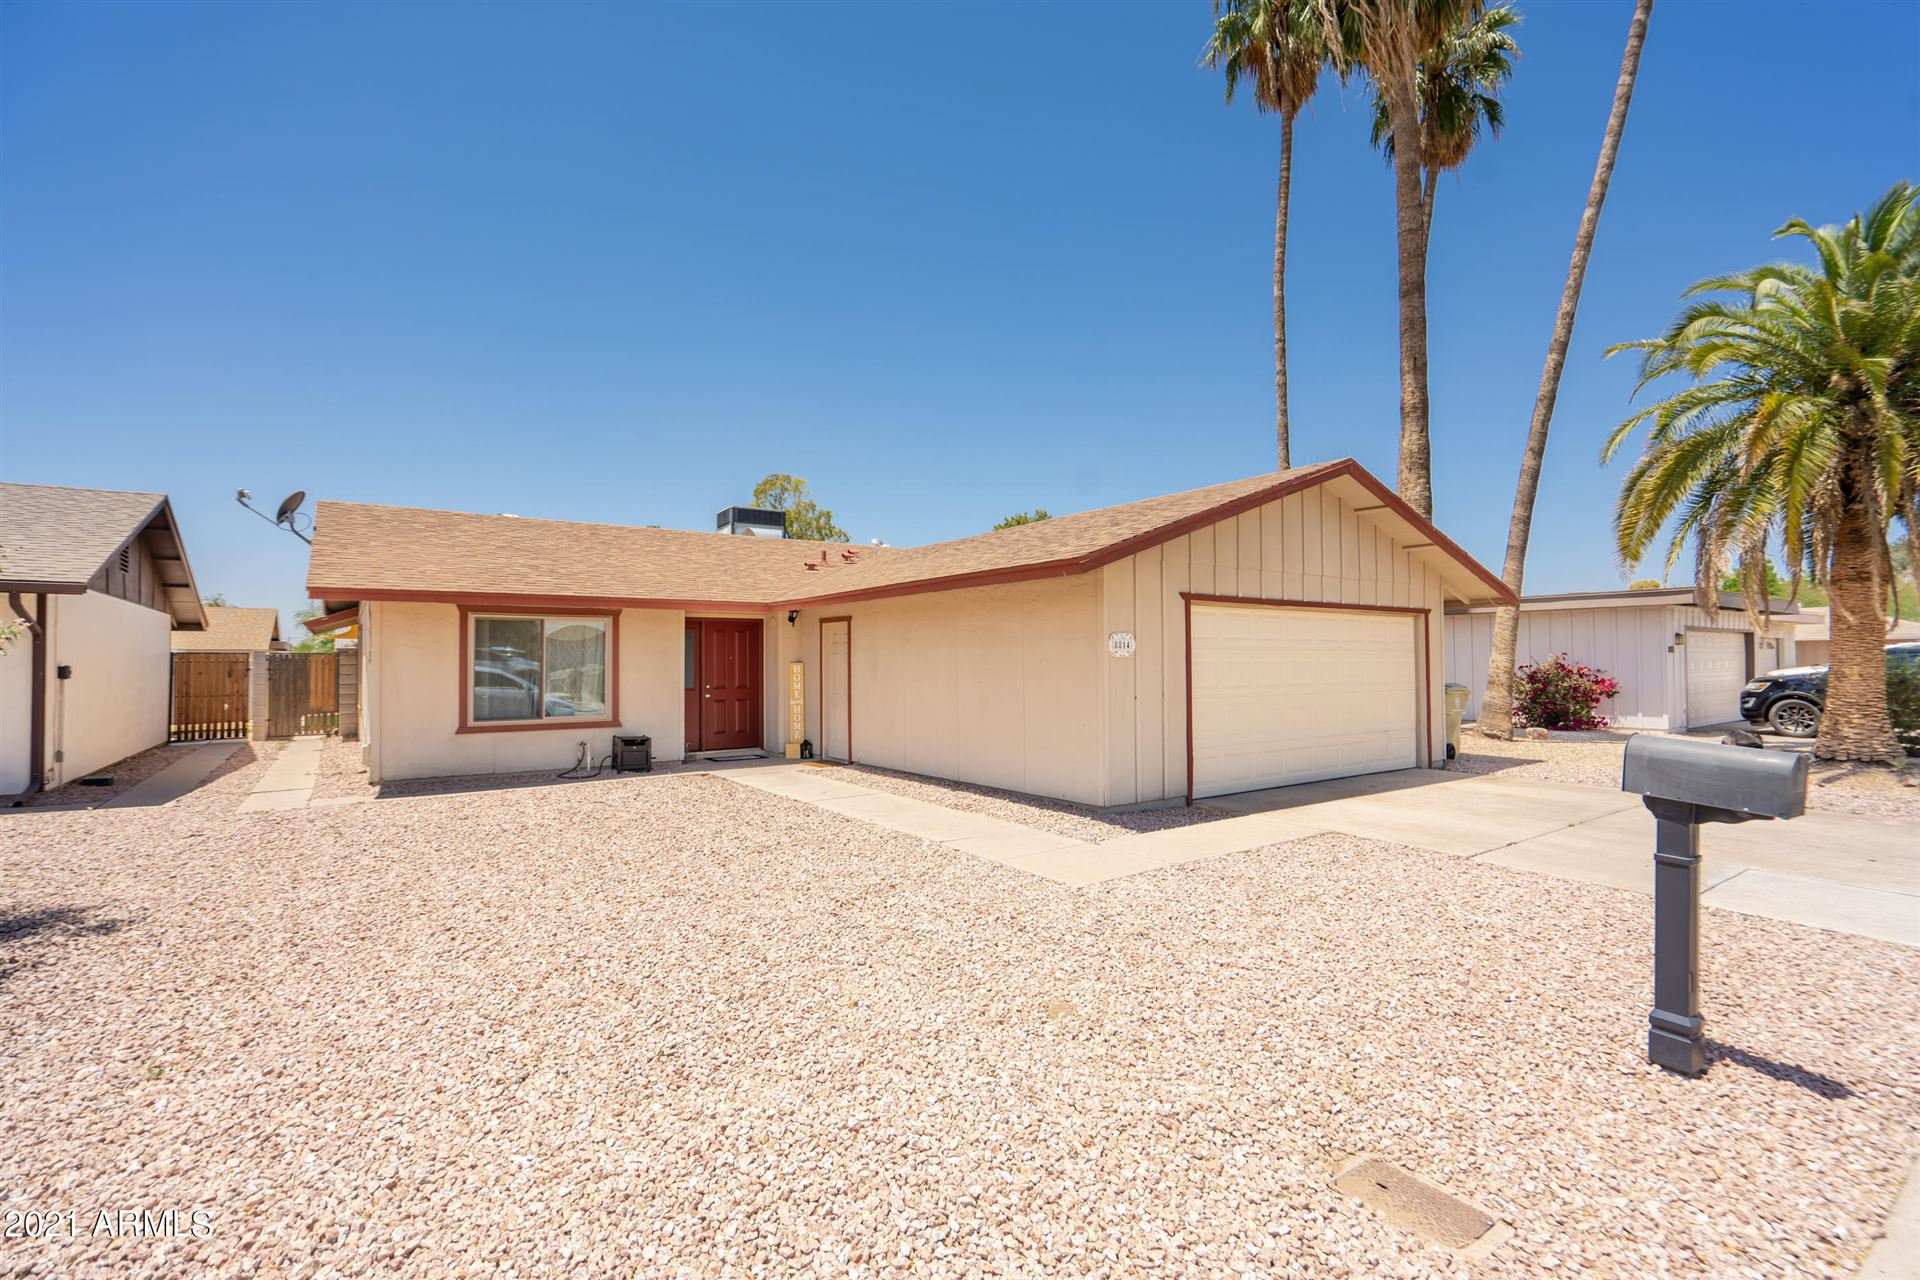 8814 N 50TH Avenue, Glendale, AZ 85302 - MLS#: 6236601